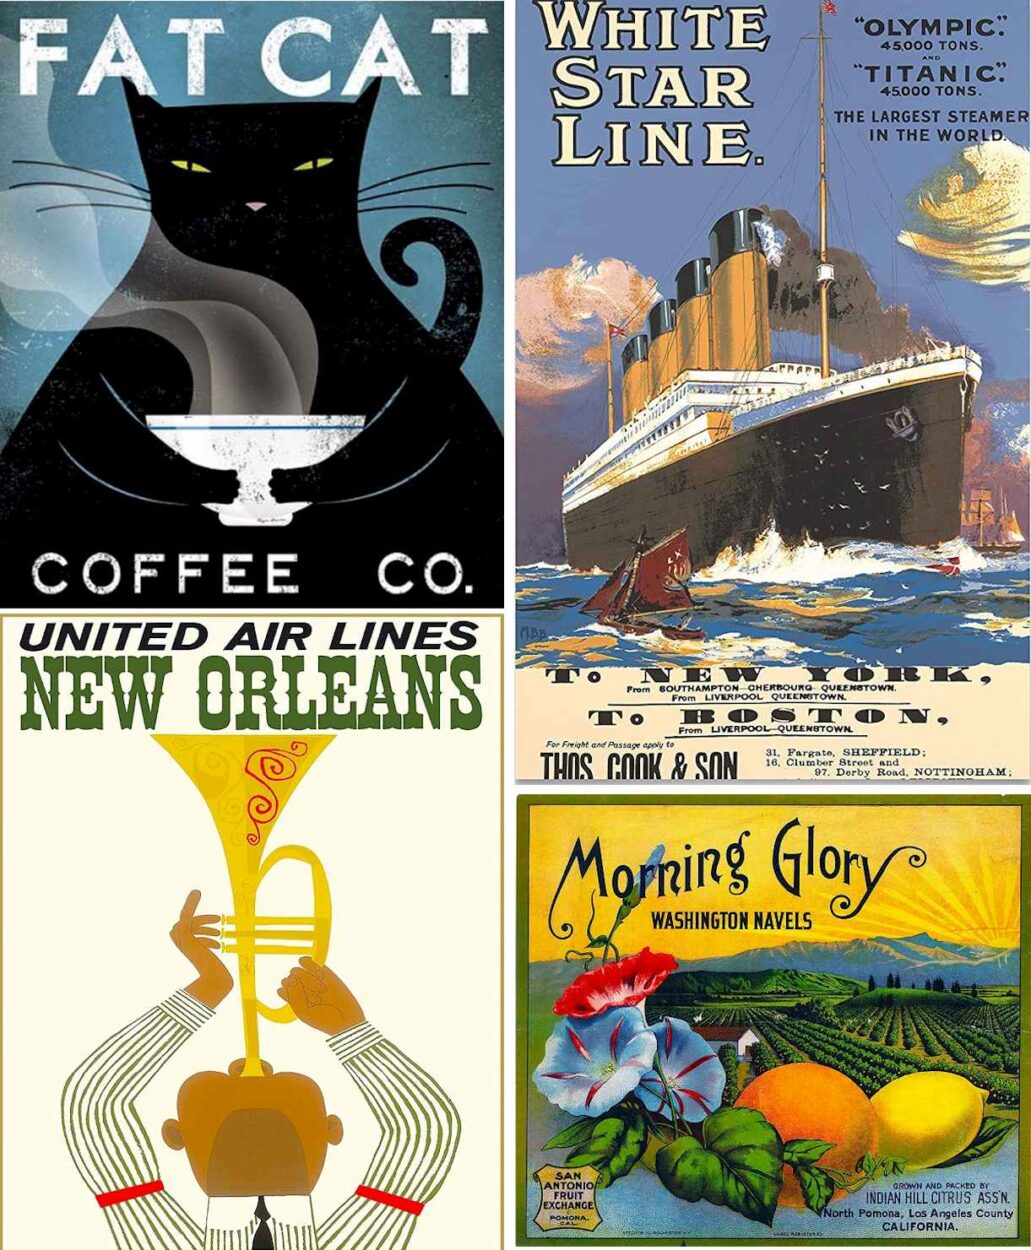 Vintage poster ads - Best Products 2021 on Amazon